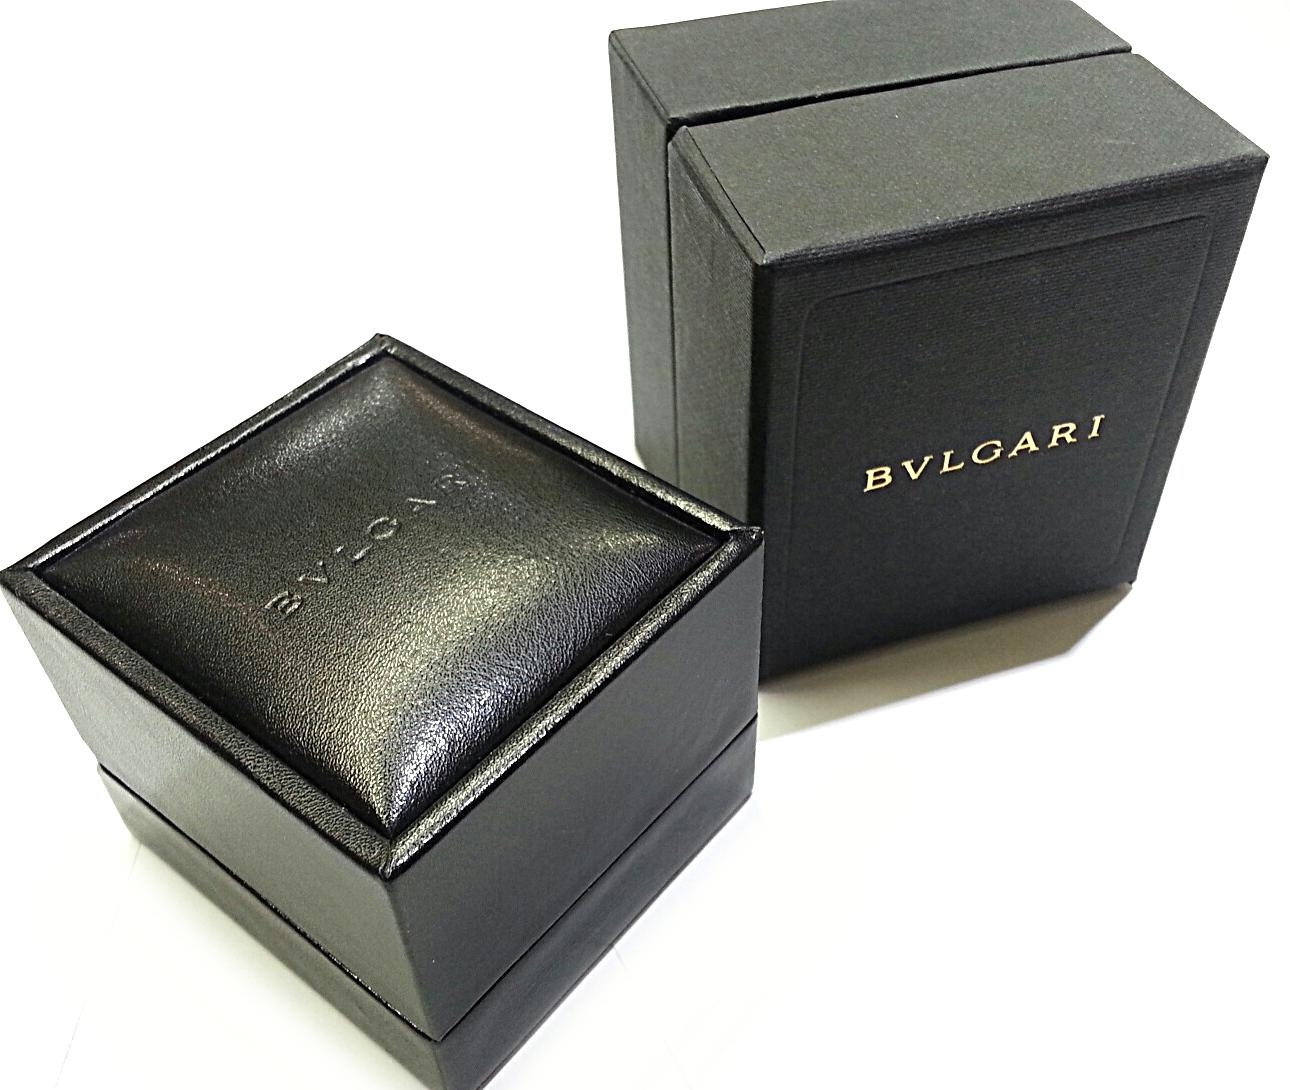 BVLGARI Leather Ring Box with Spring Loaded Holder Tradesy